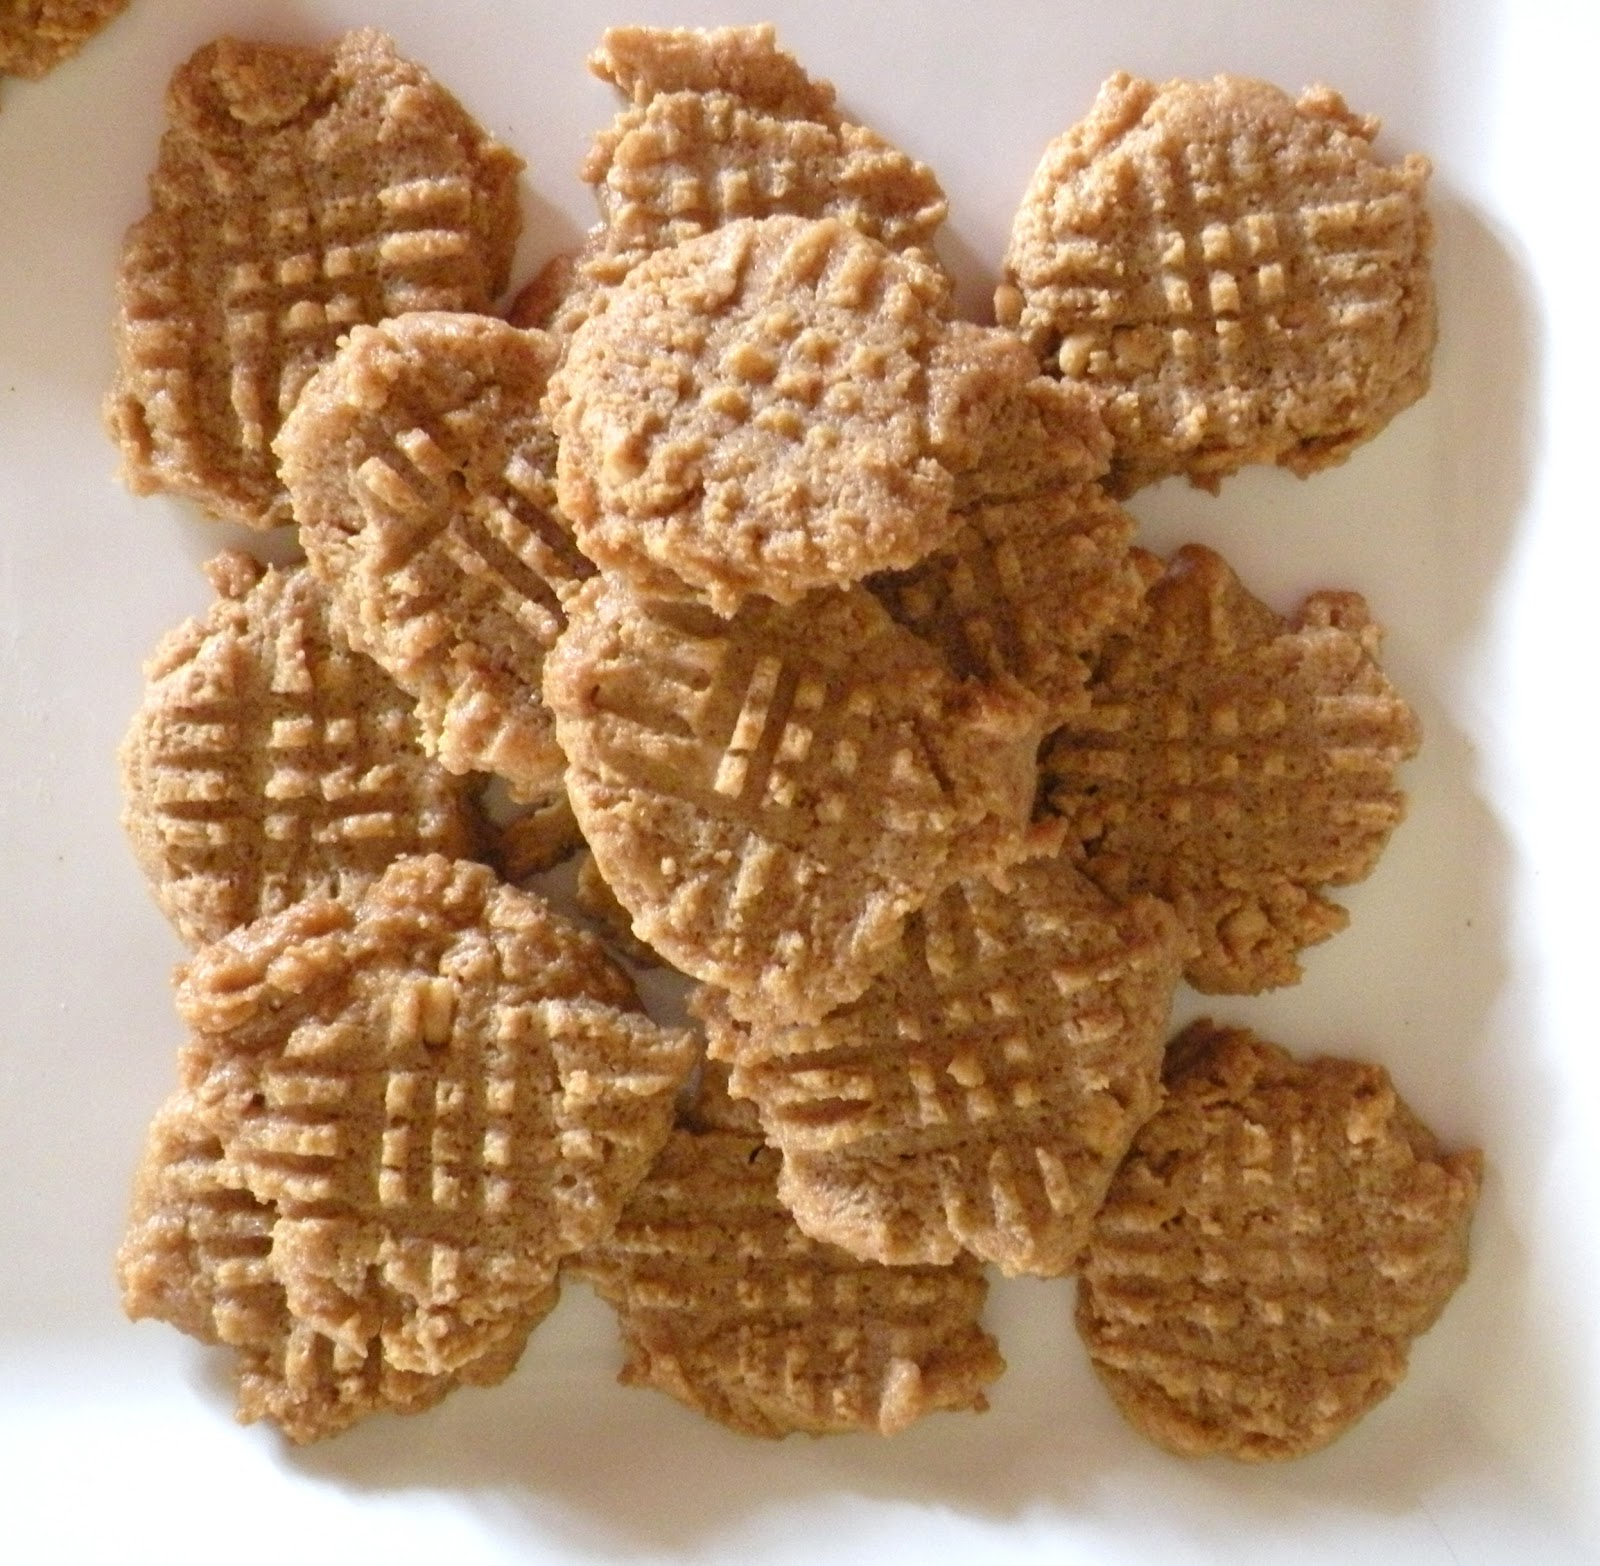 ... Easy Peanut Butter Cookies (Low Carb & Gluten Free) | Ditch The Wheat